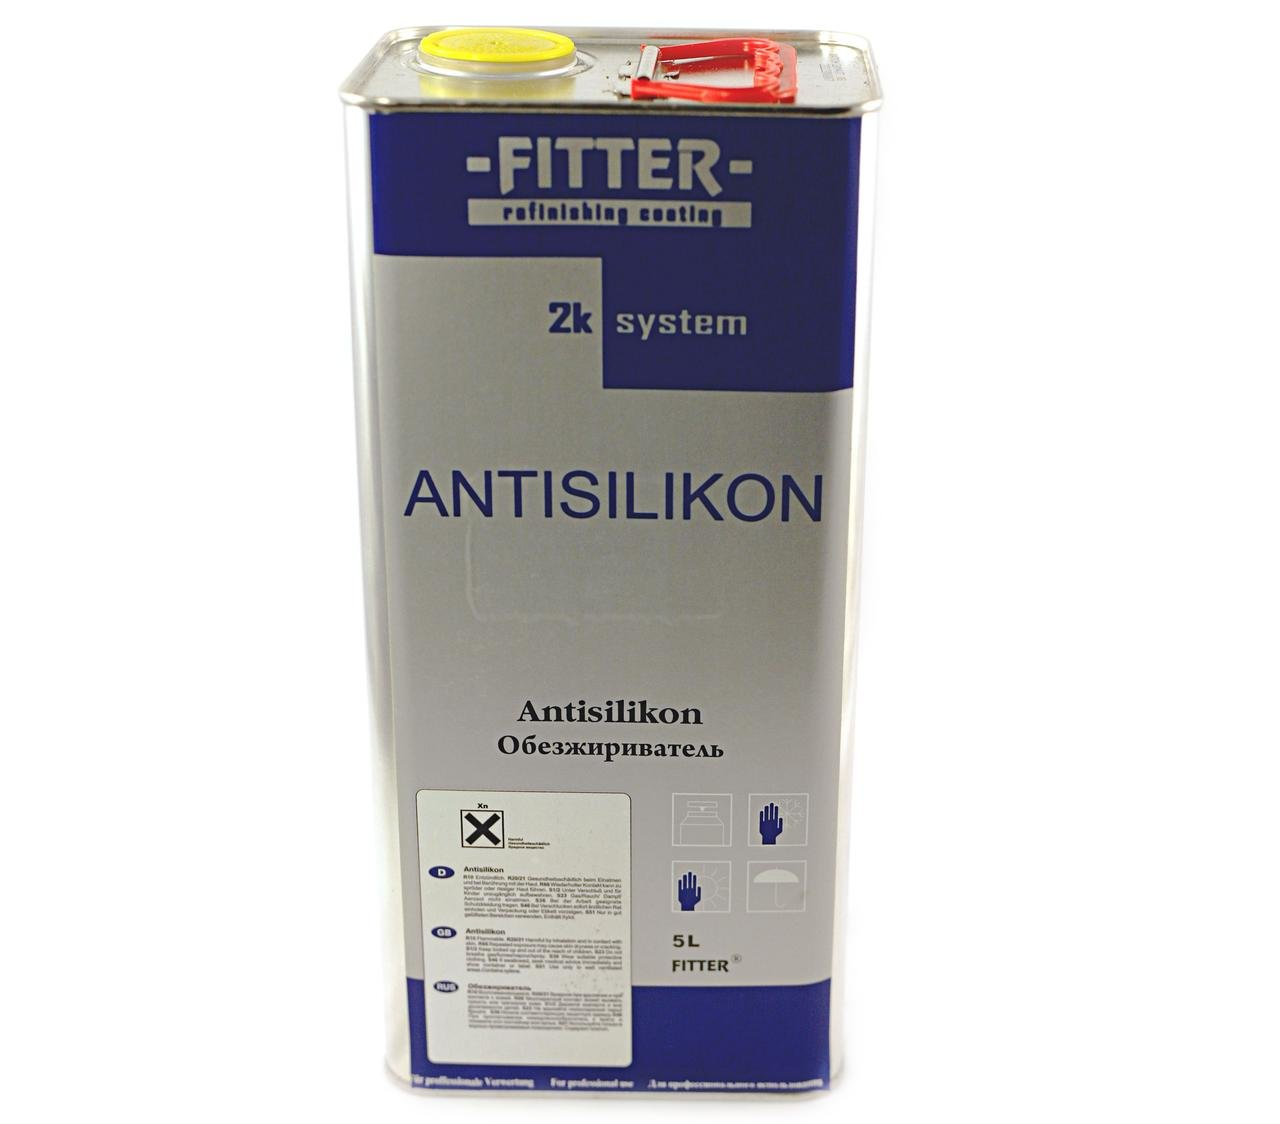 FITTER Silicone Entferner NF- обезжириватель 5 л.